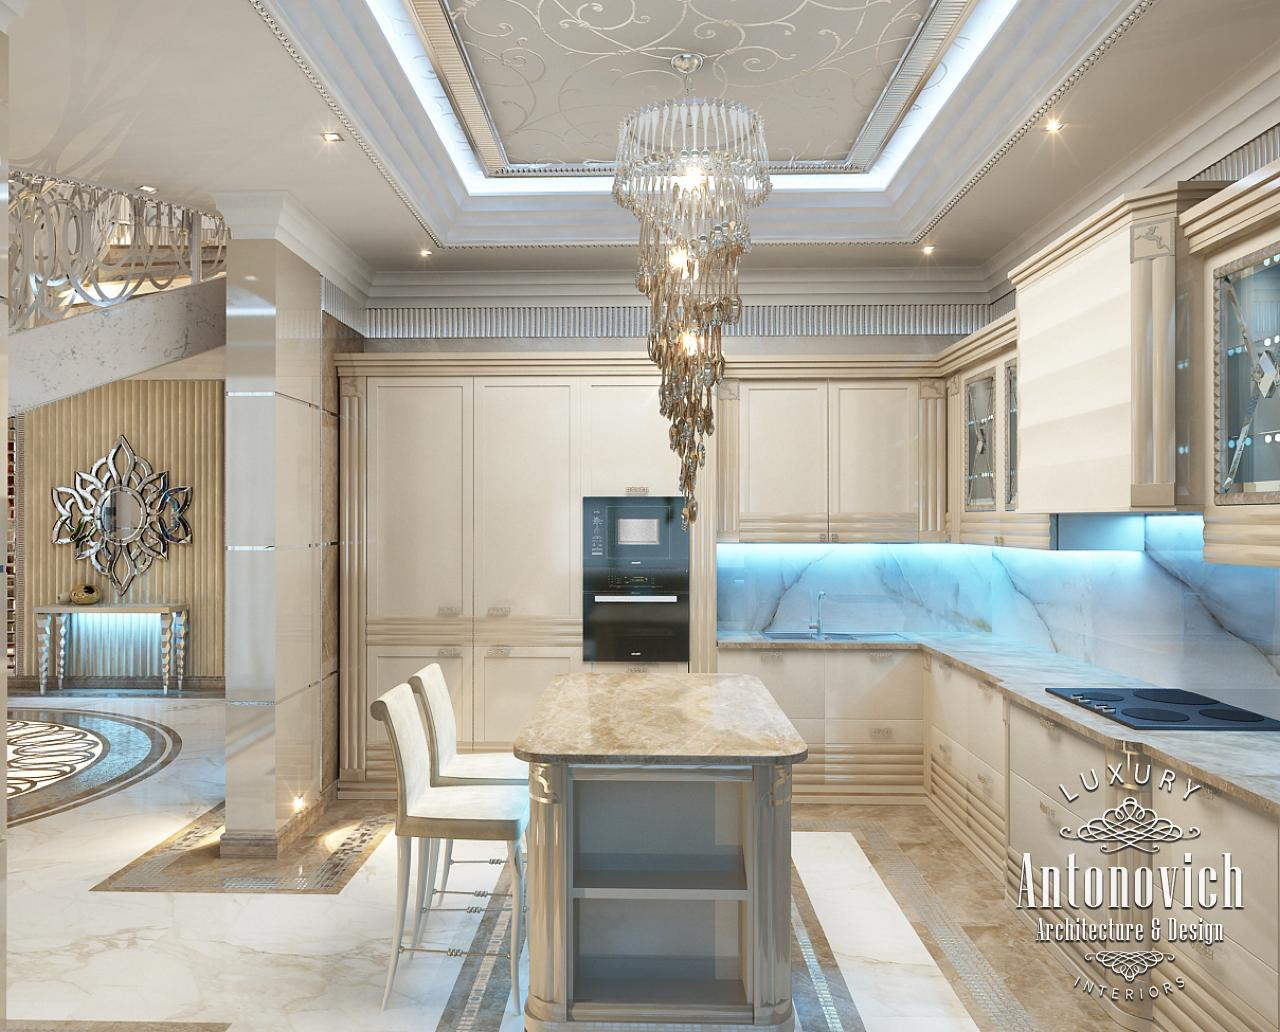 Luxury antonovich design uae luxury interior design dubai for Interior design